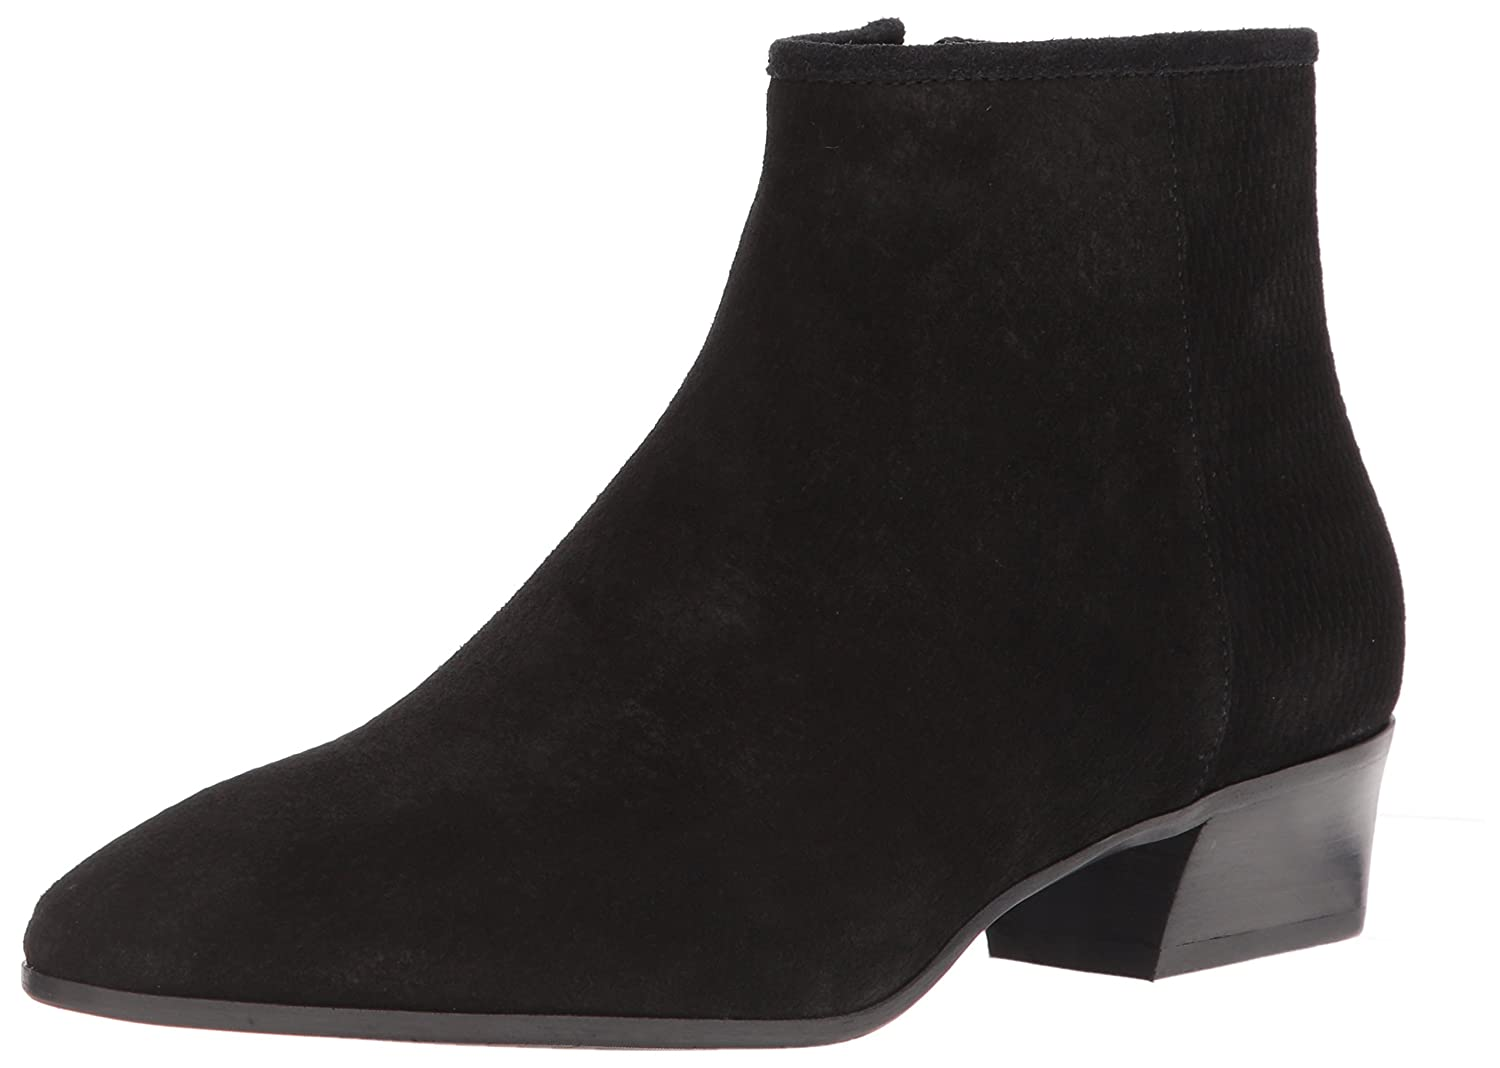 Aquatalia Women's Fire Perforated Suede Ankle Boot B072R49QDZ 9.5 M M US|Black